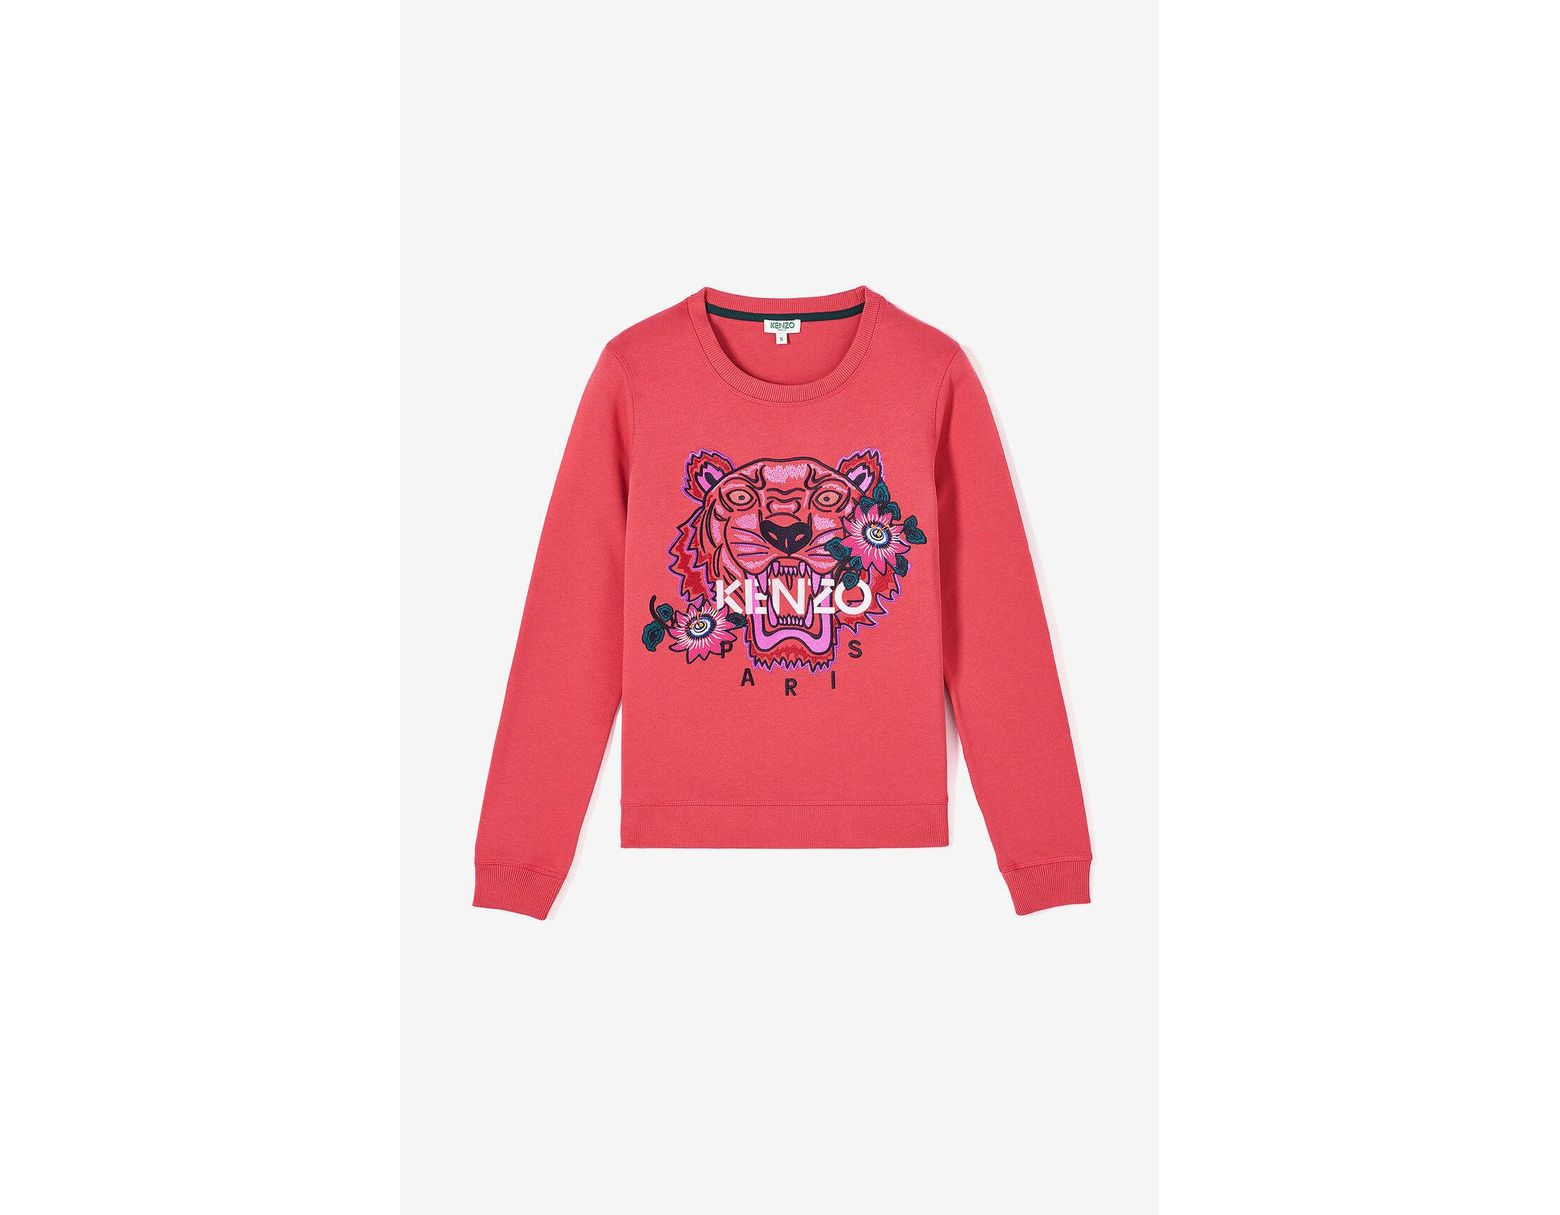 b90573a585 KENZO 'passion Flower' Tiger Sweatshirt in Red - Lyst